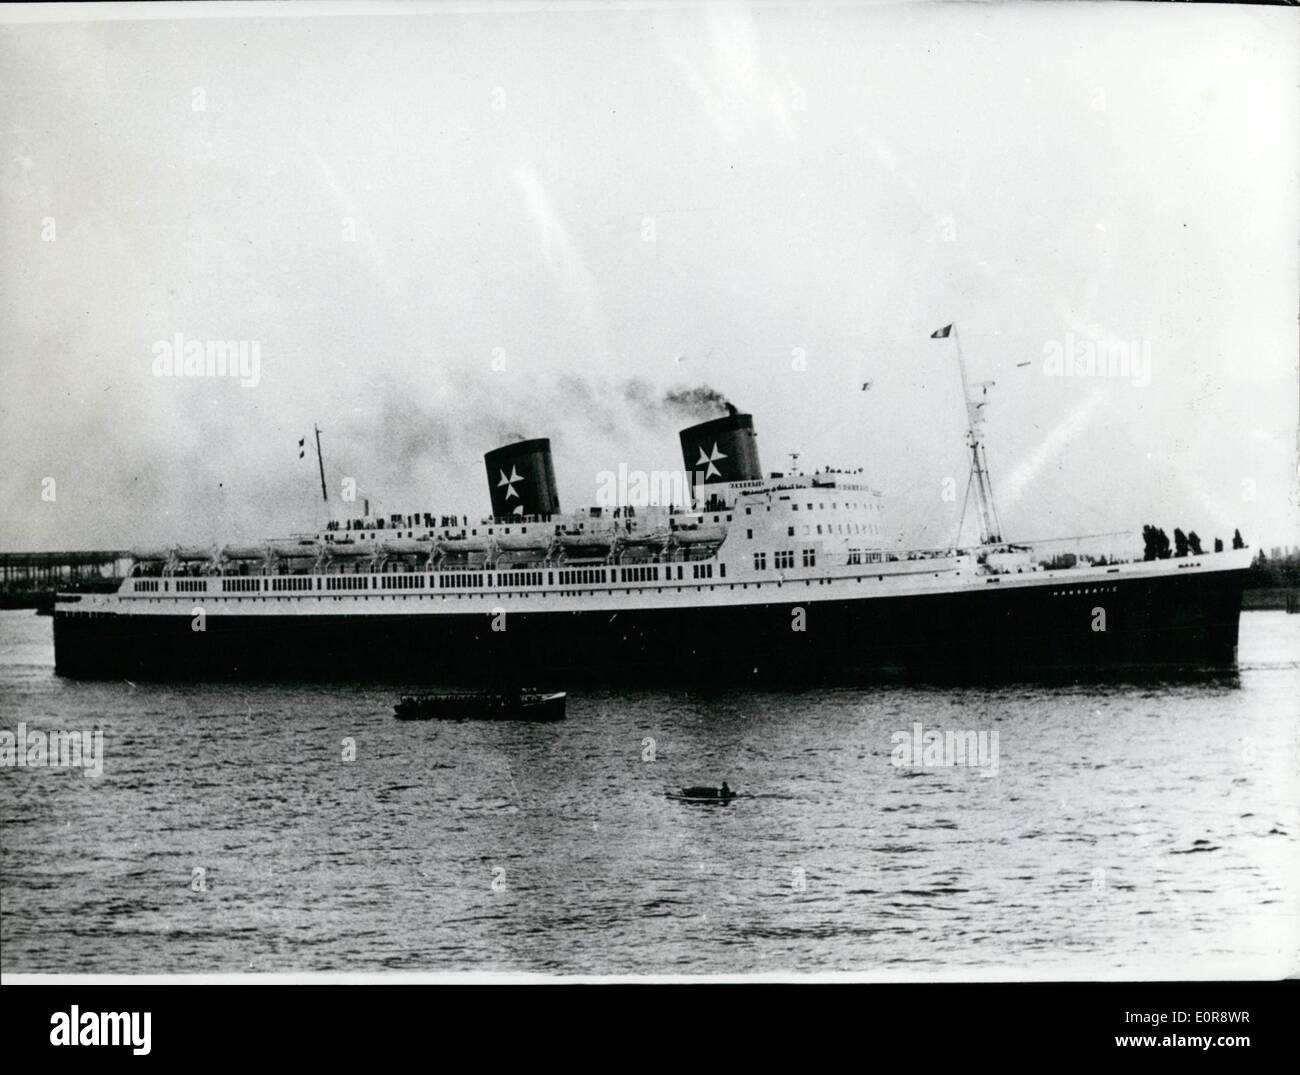 Jul. 07, 1958 - Virgin-drive of the new liner ''Hanseatic'': On Sunday 20.7.58 started the liner ''Hanseatic'' (30 000 tons) from the Hamburg harbour to its virgin-drive to New-York. On board of the new liner the lord major of Hamburg, Max Brauer, left the German city. - Stock Image